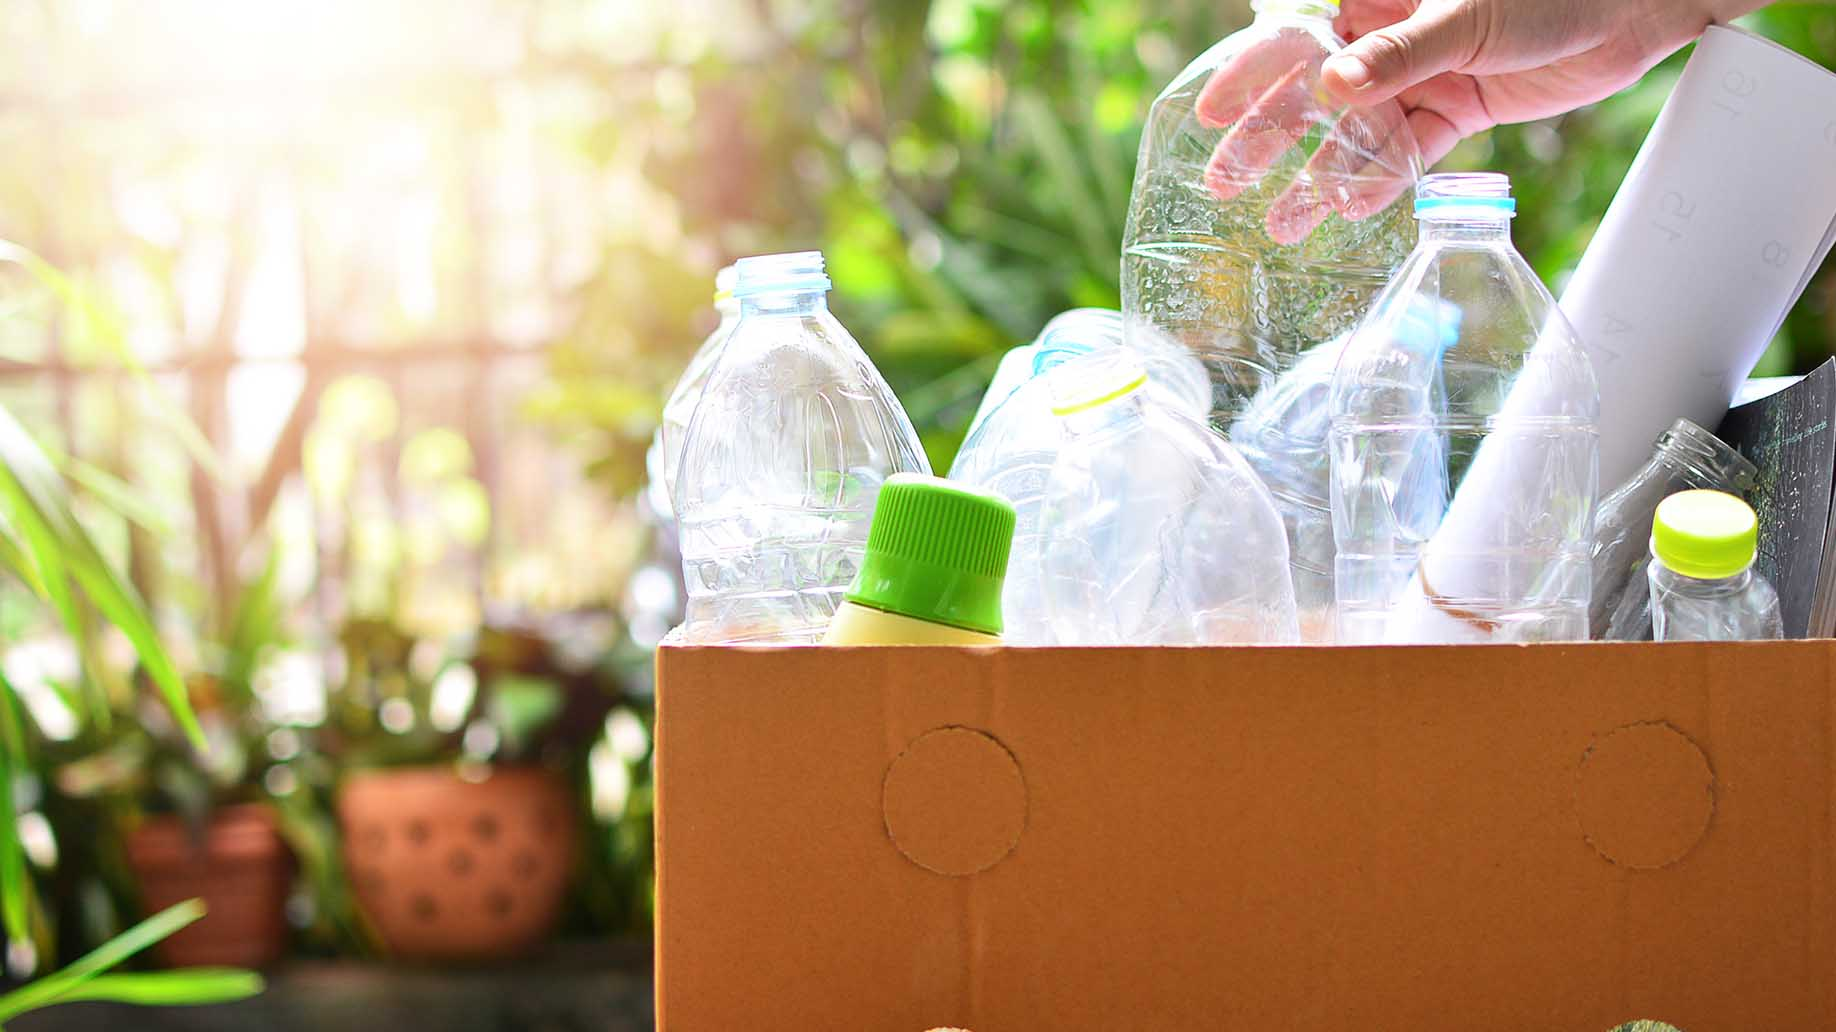 recycling and proper waste management